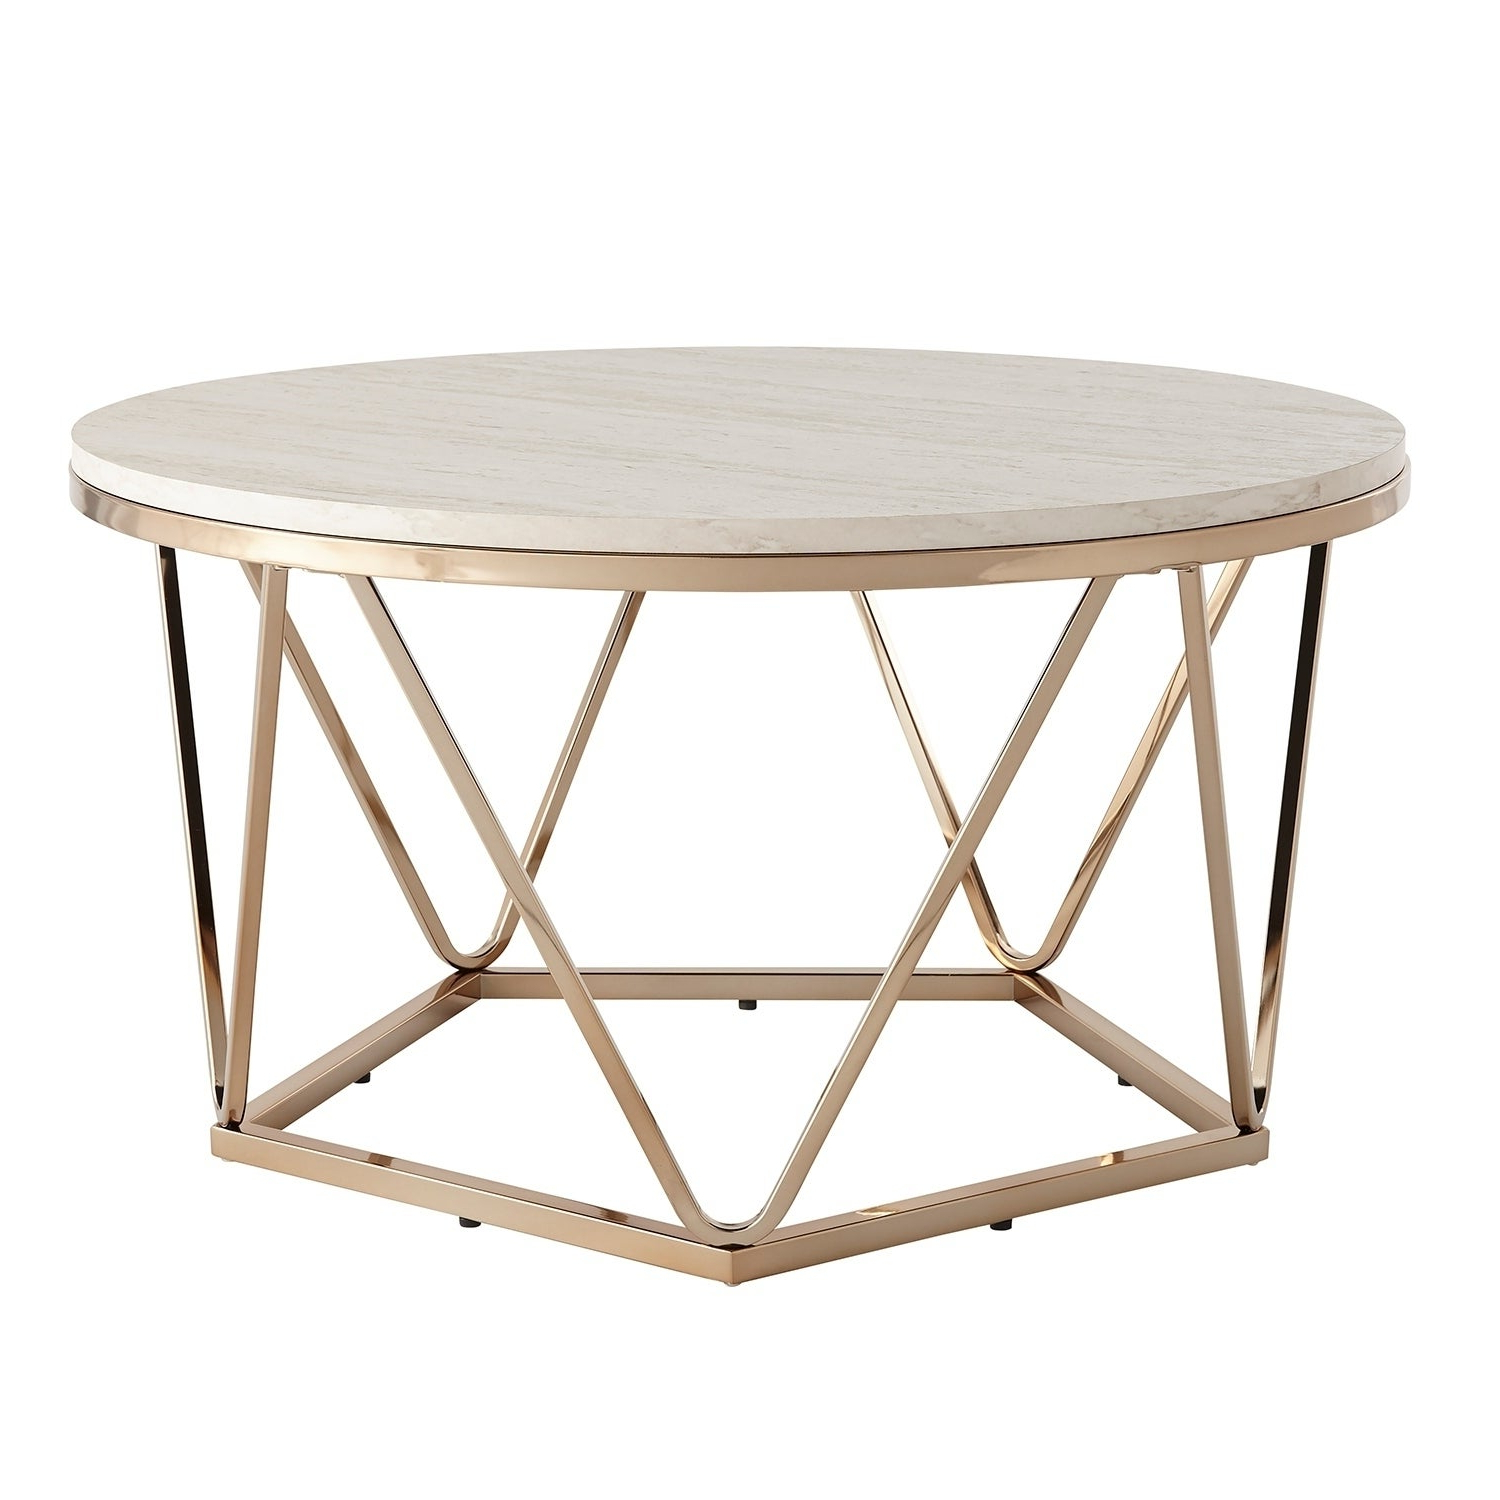 Well Known Silver Orchid Henderson Faux Stone Round End Tables Pertaining To Silver Orchid Henderson Faux Stone Goldtone Round Coffee Table (View 8 of 20)